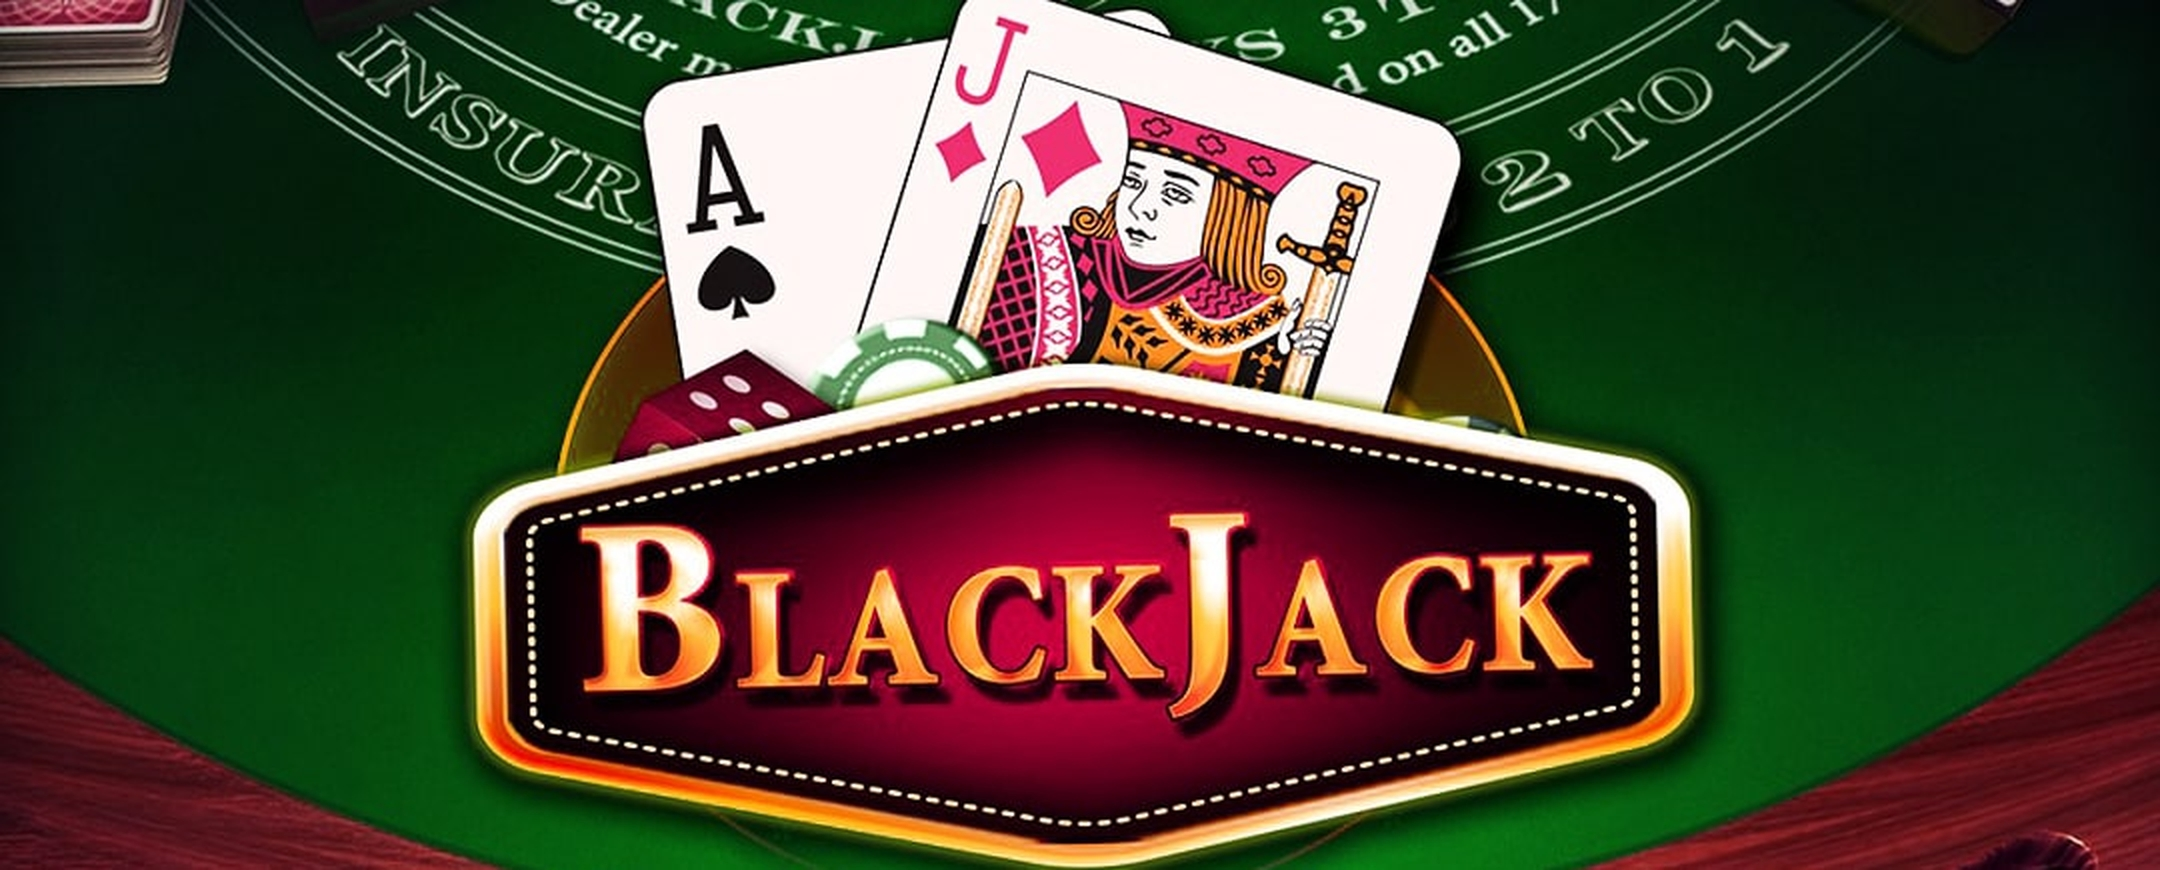 The BlackJack (Playson) Online Slot Demo Game by Playson